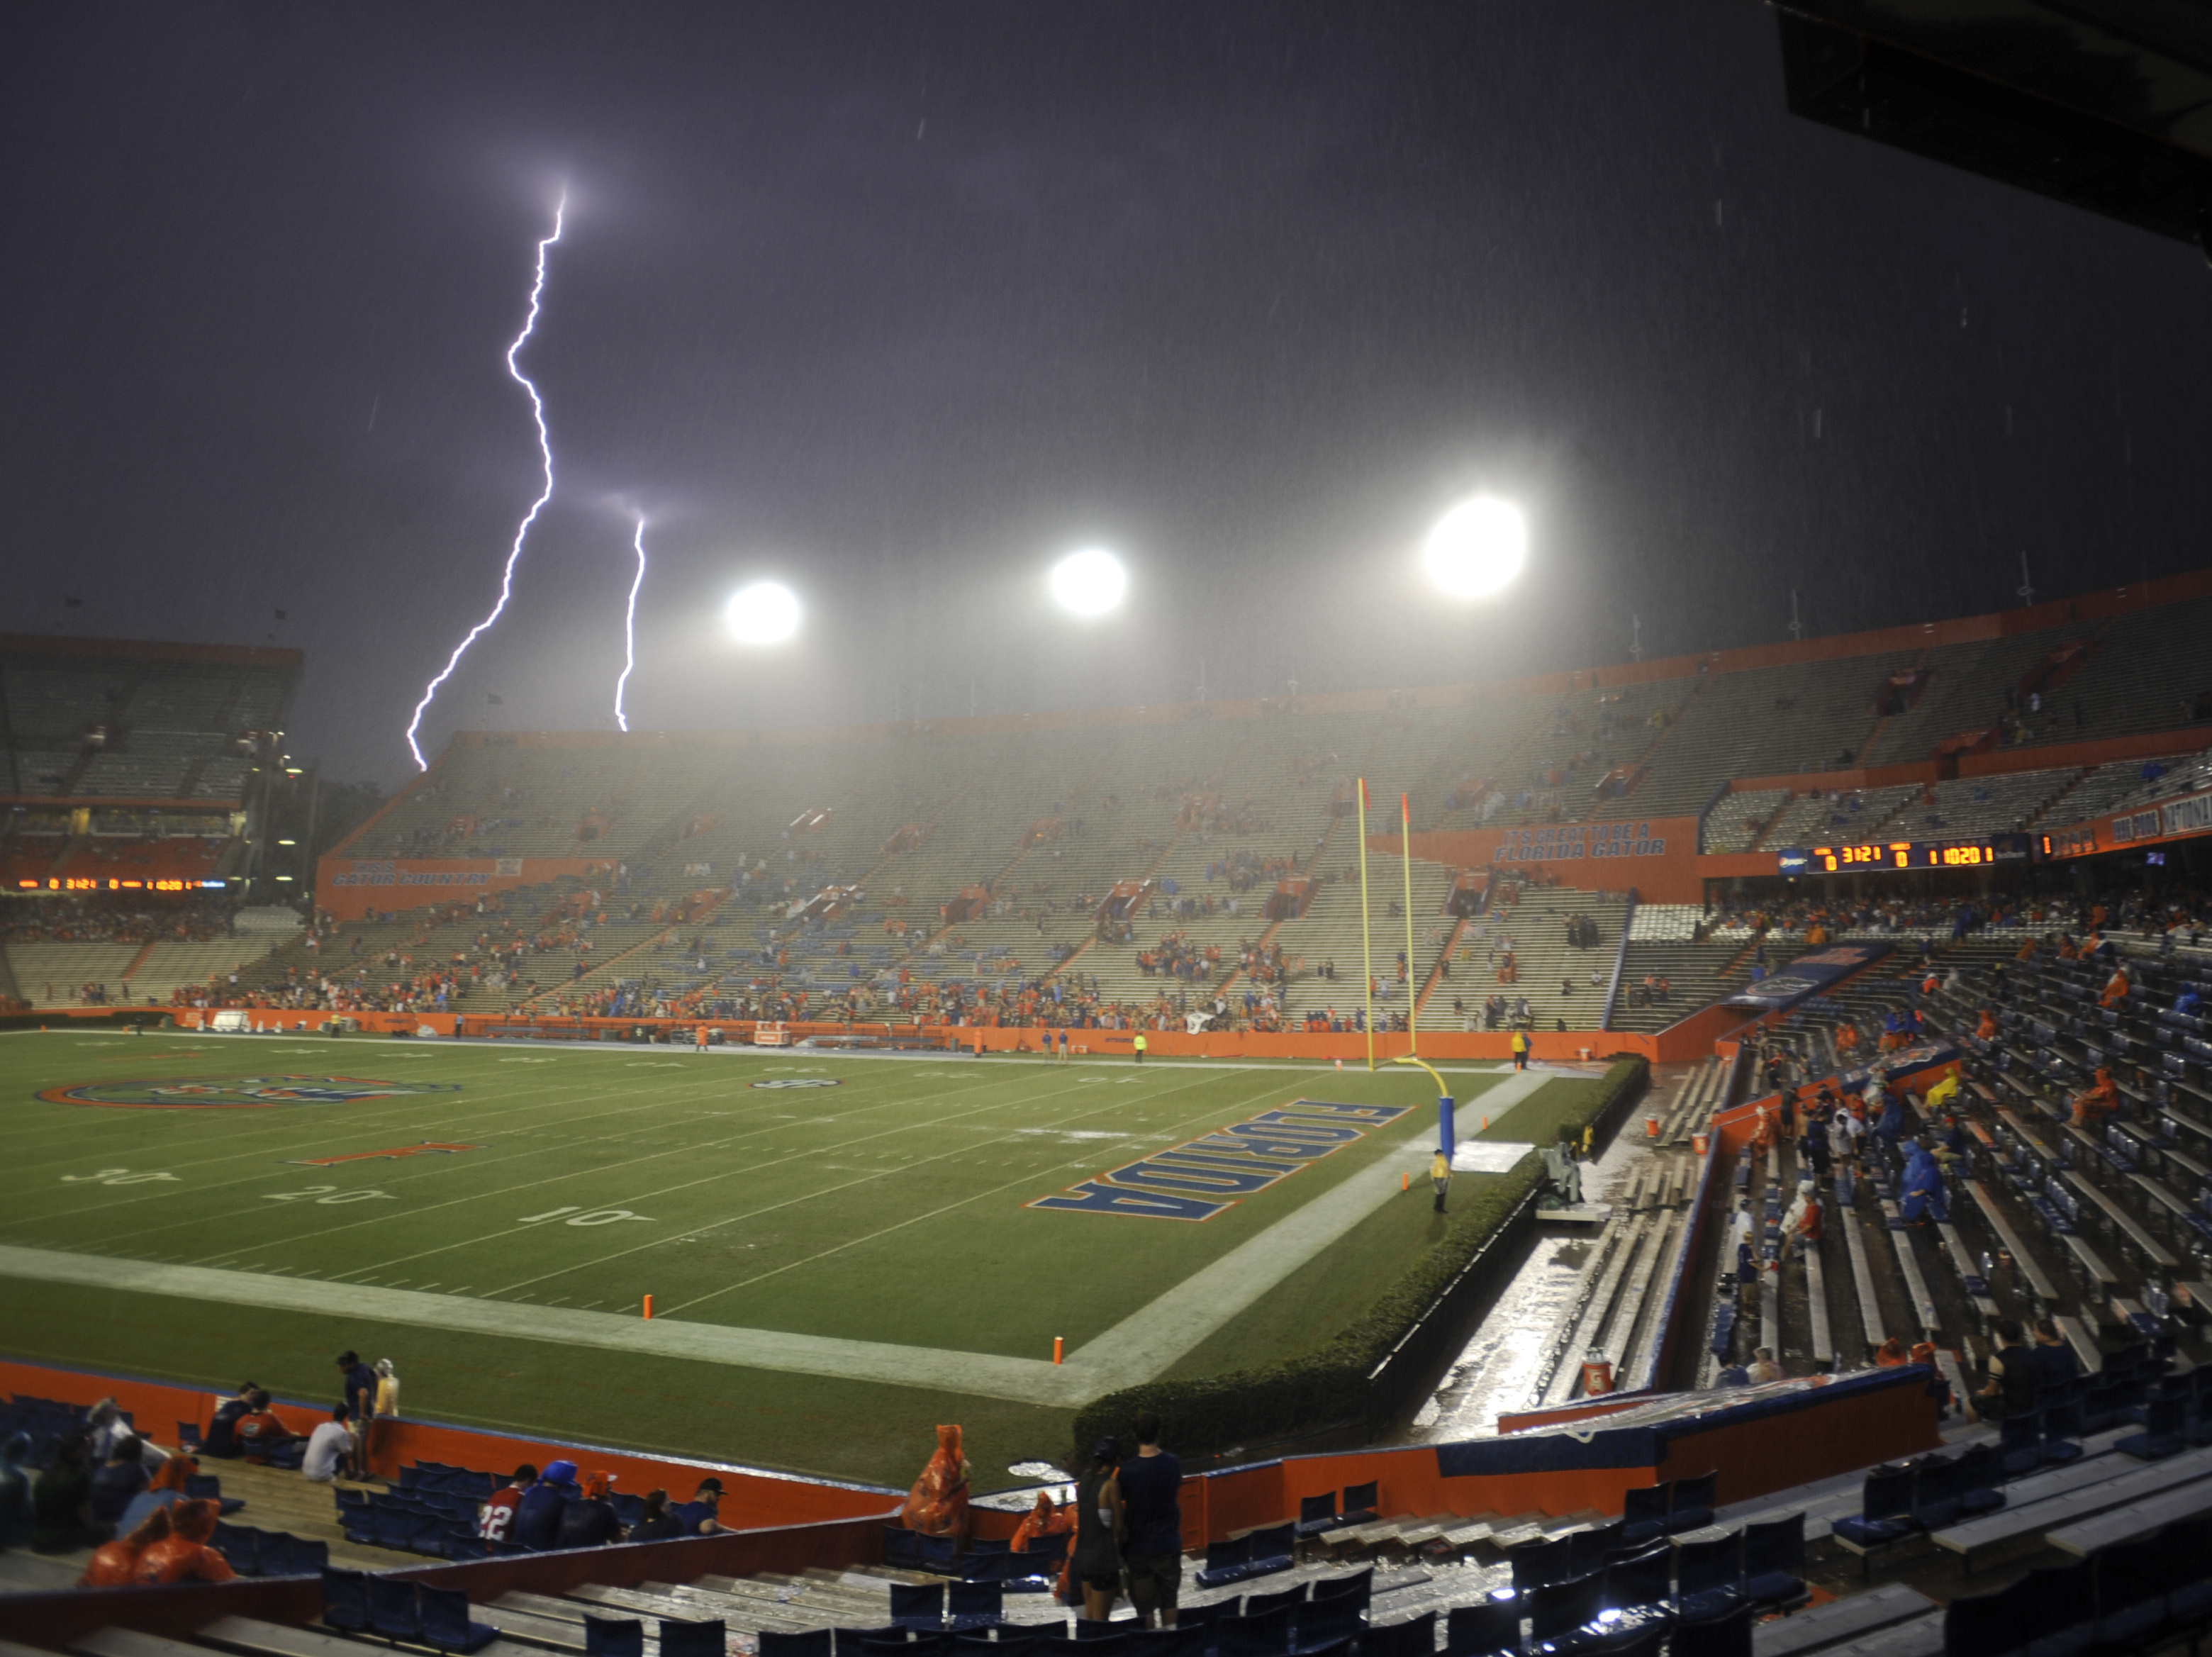 Climate Change To Make Lightning More Common, Study Says